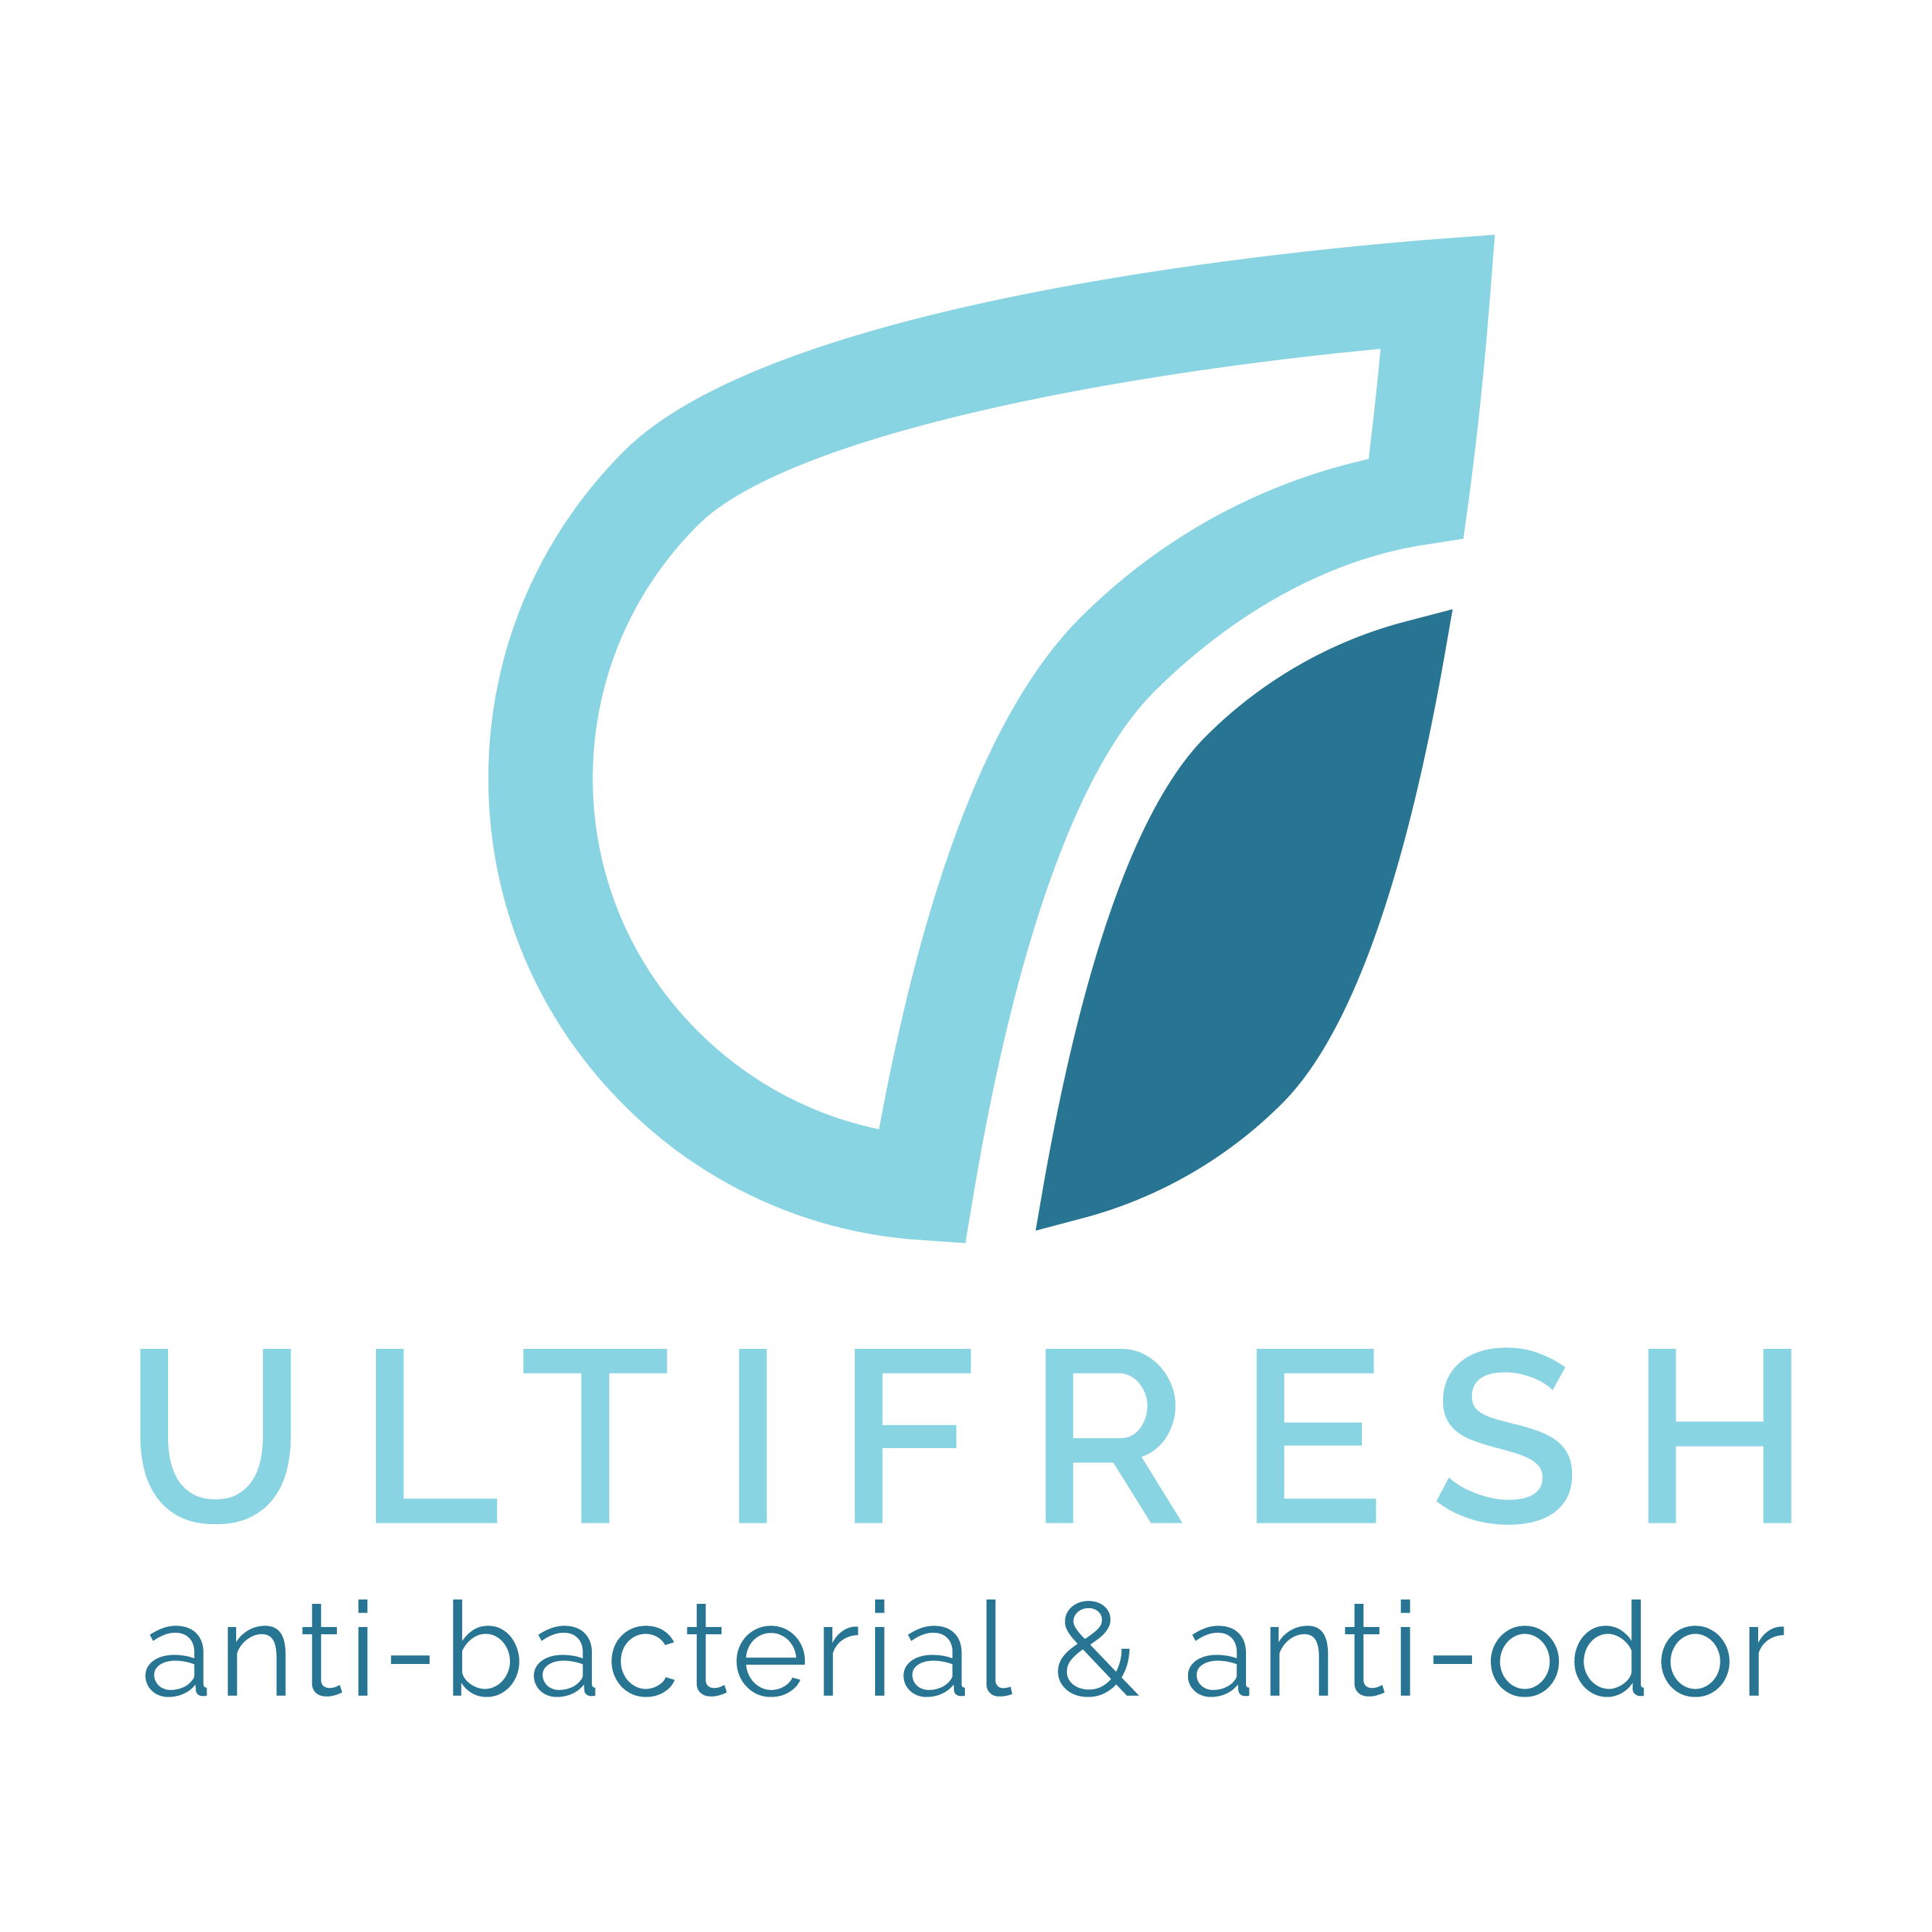 Ultifresh